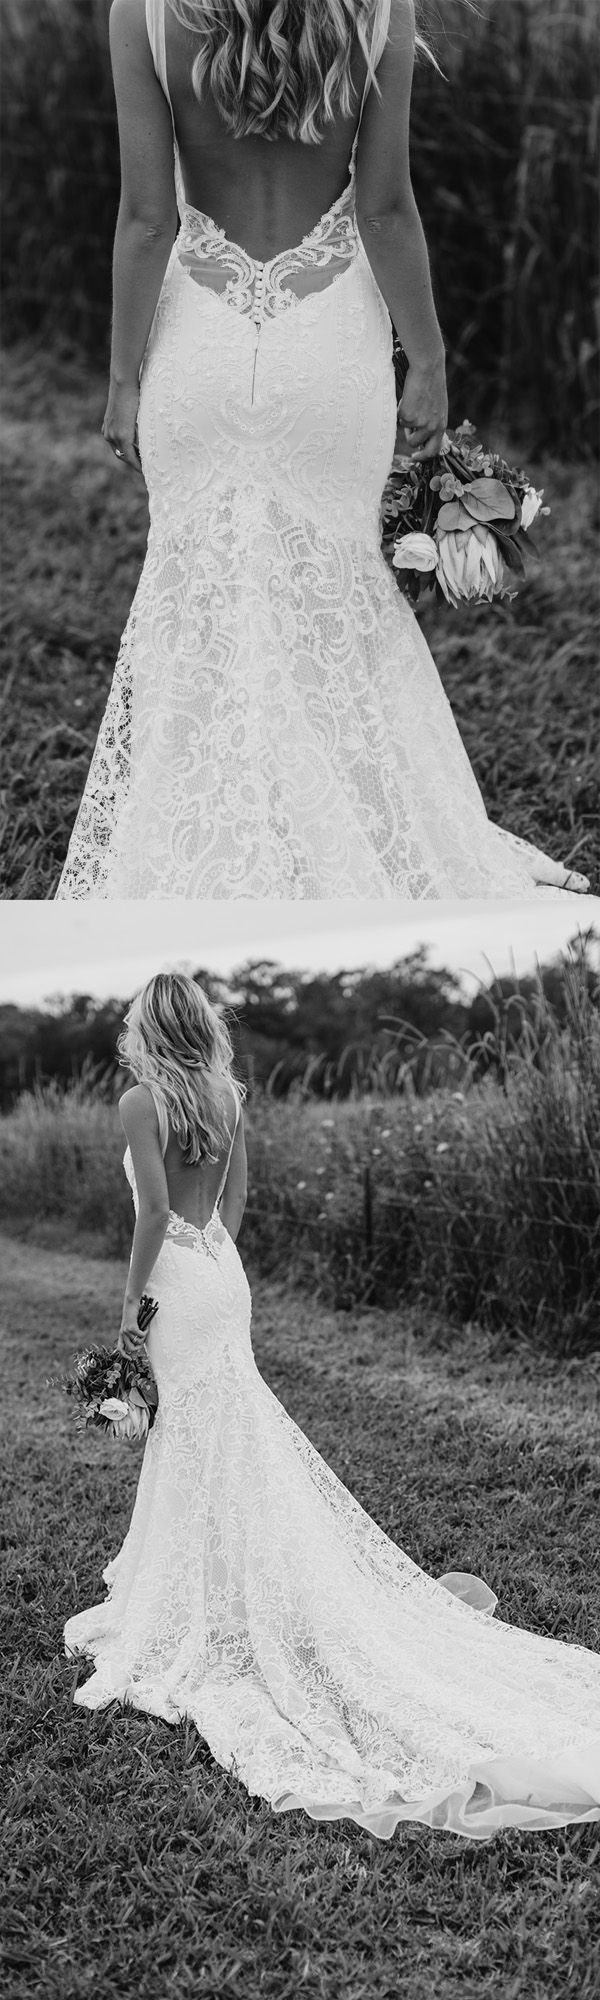 Sexy low back wedding gown